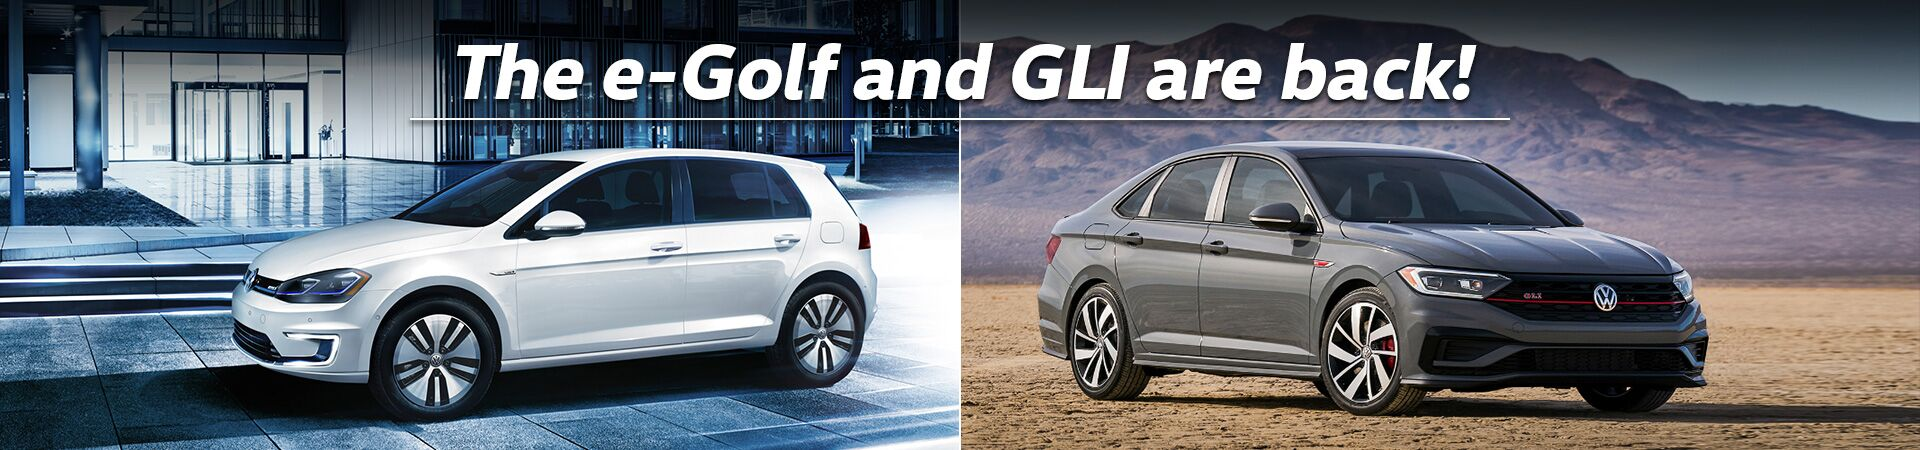 e-golf and GLI are BACK!